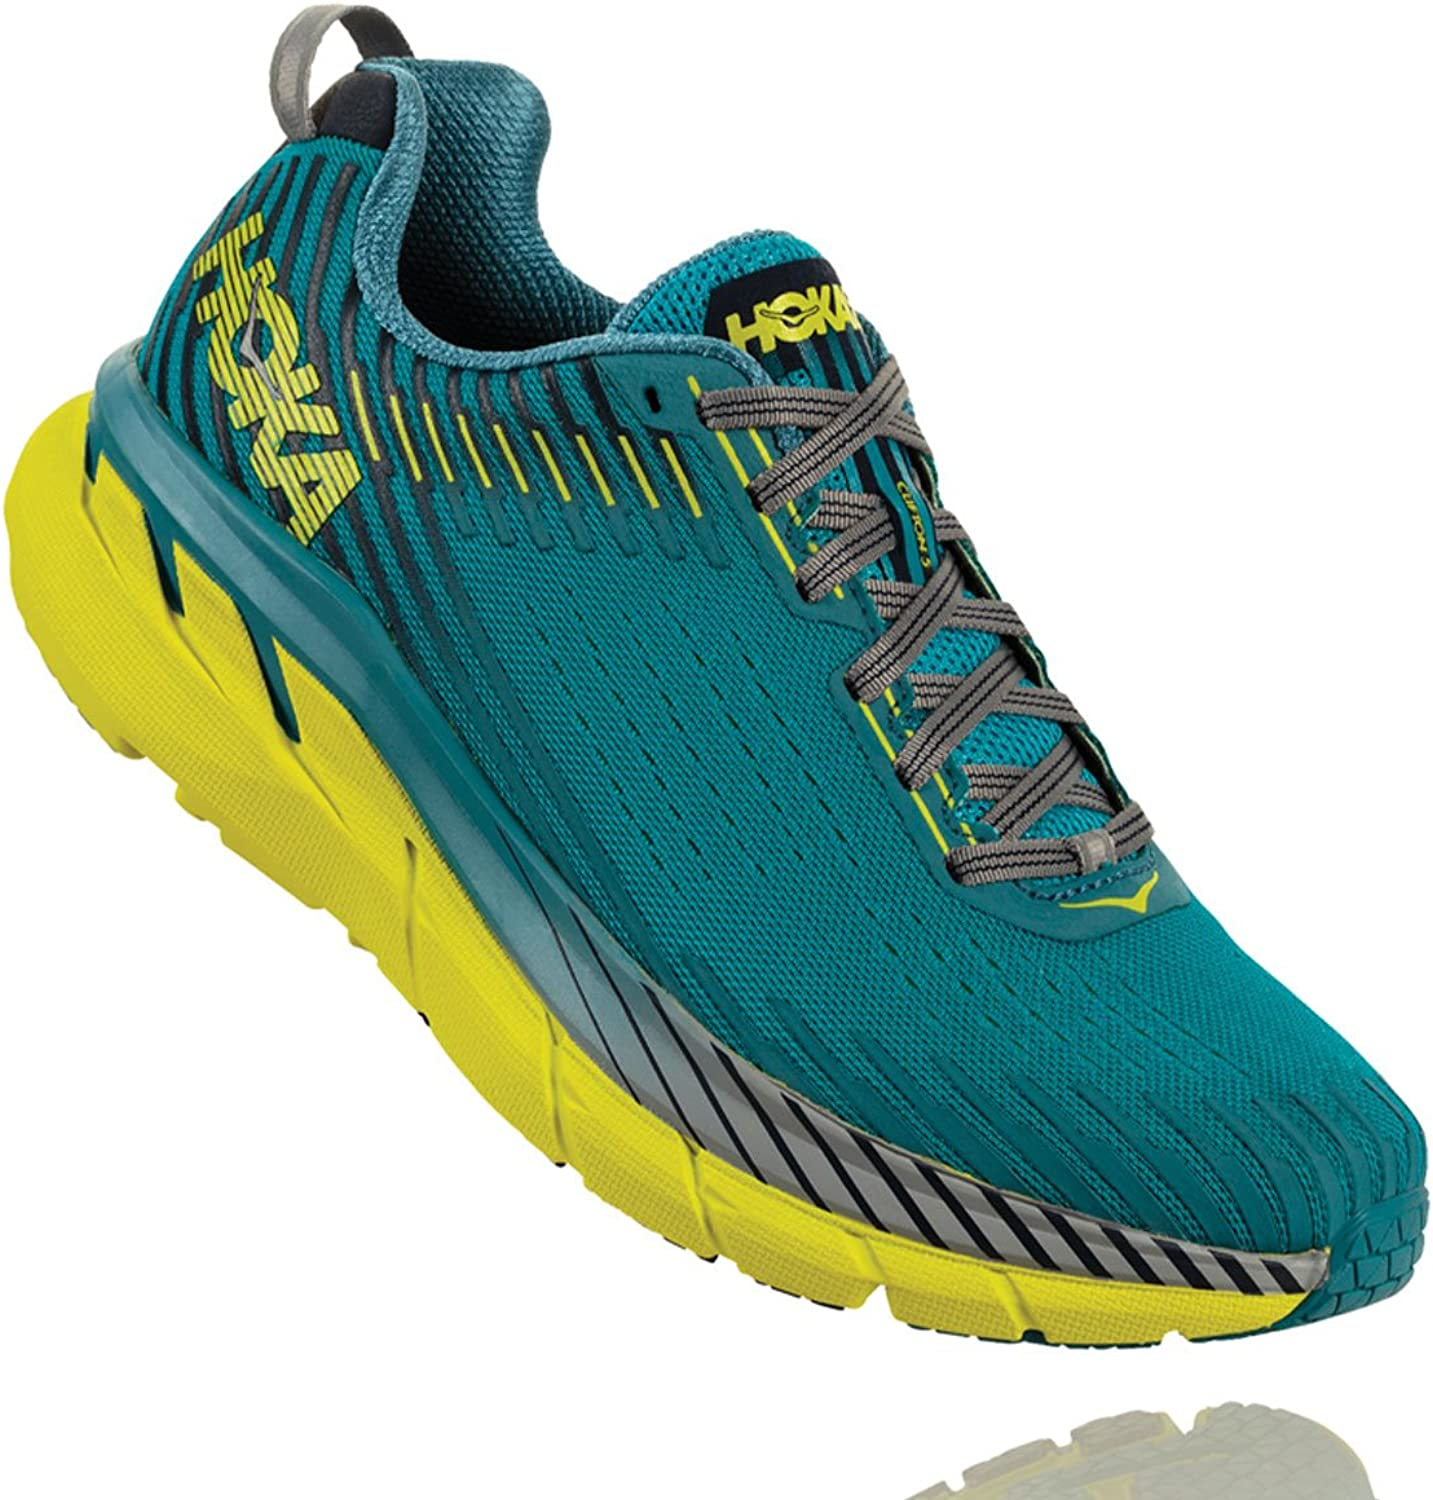 HOKA ONE ONE Men's Clifton 5 Running shoes Carribean Sea Storm bluee Size 11.5 D US